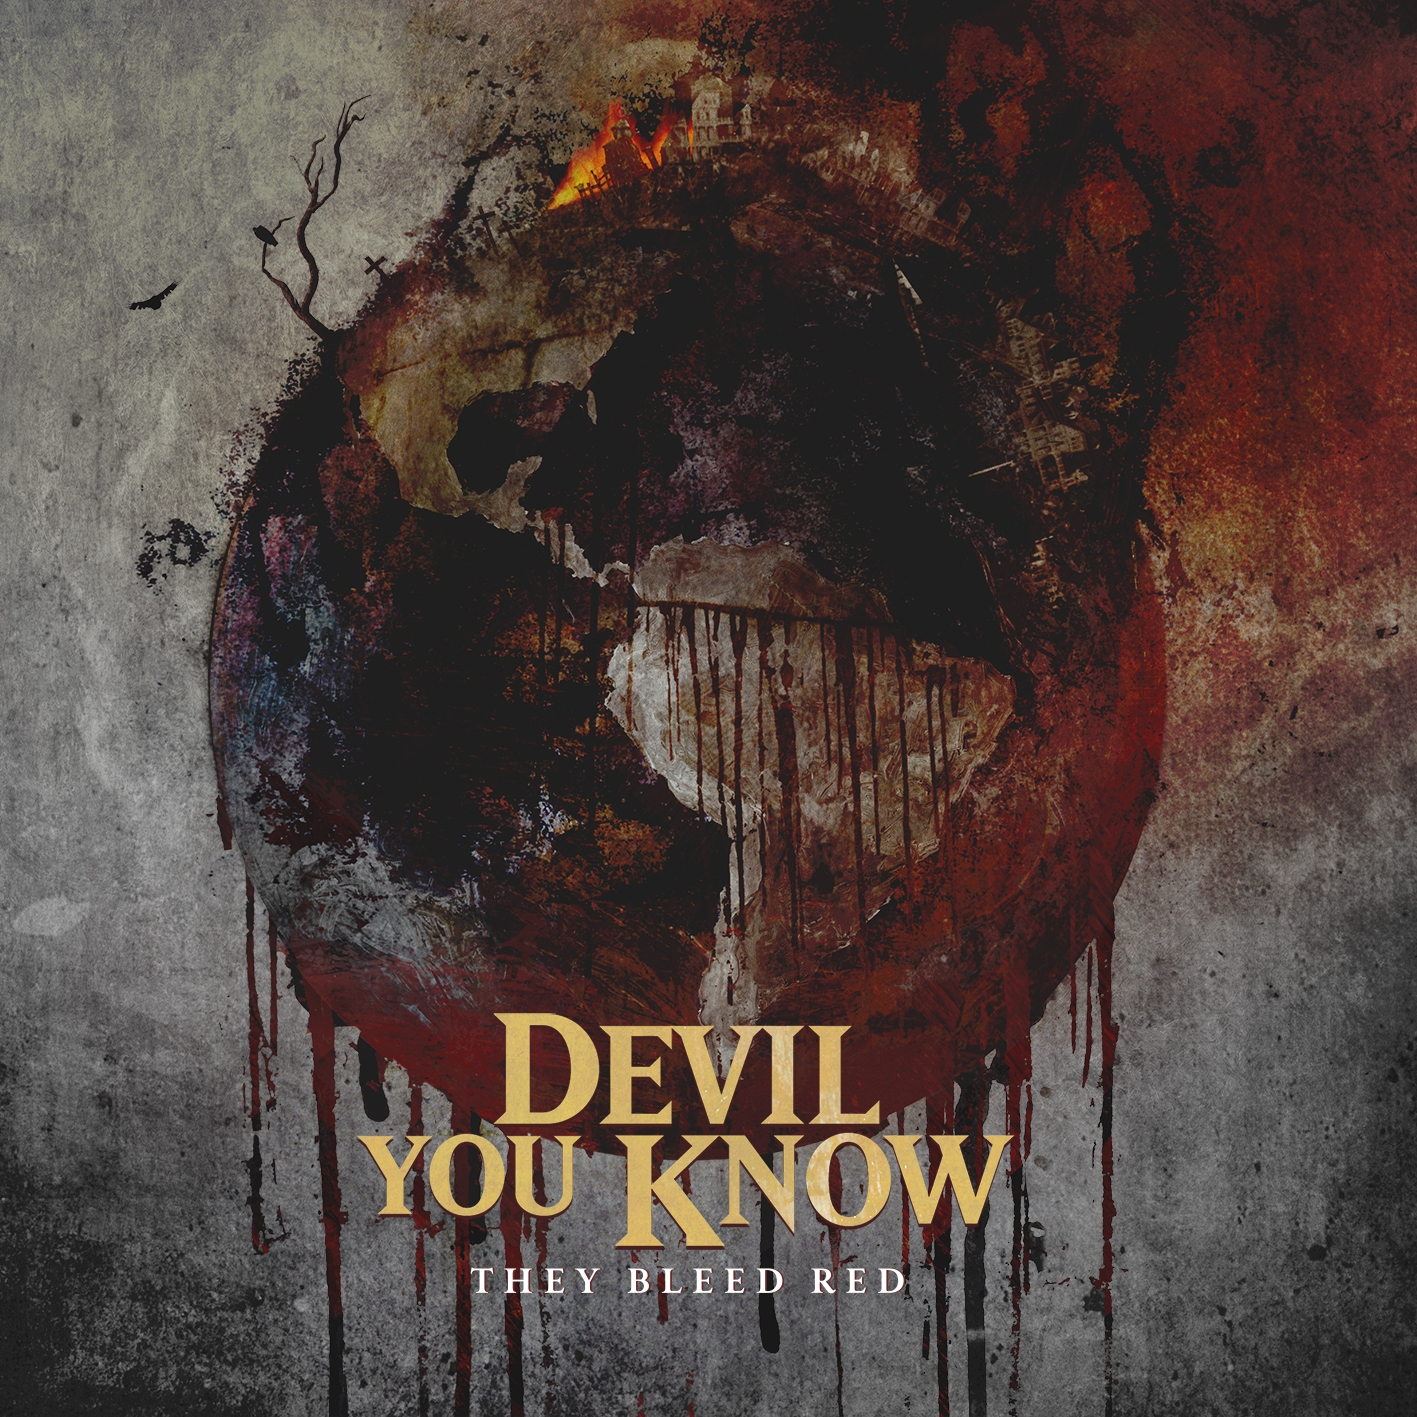 devil-you-know-they-bleed-red-artwork